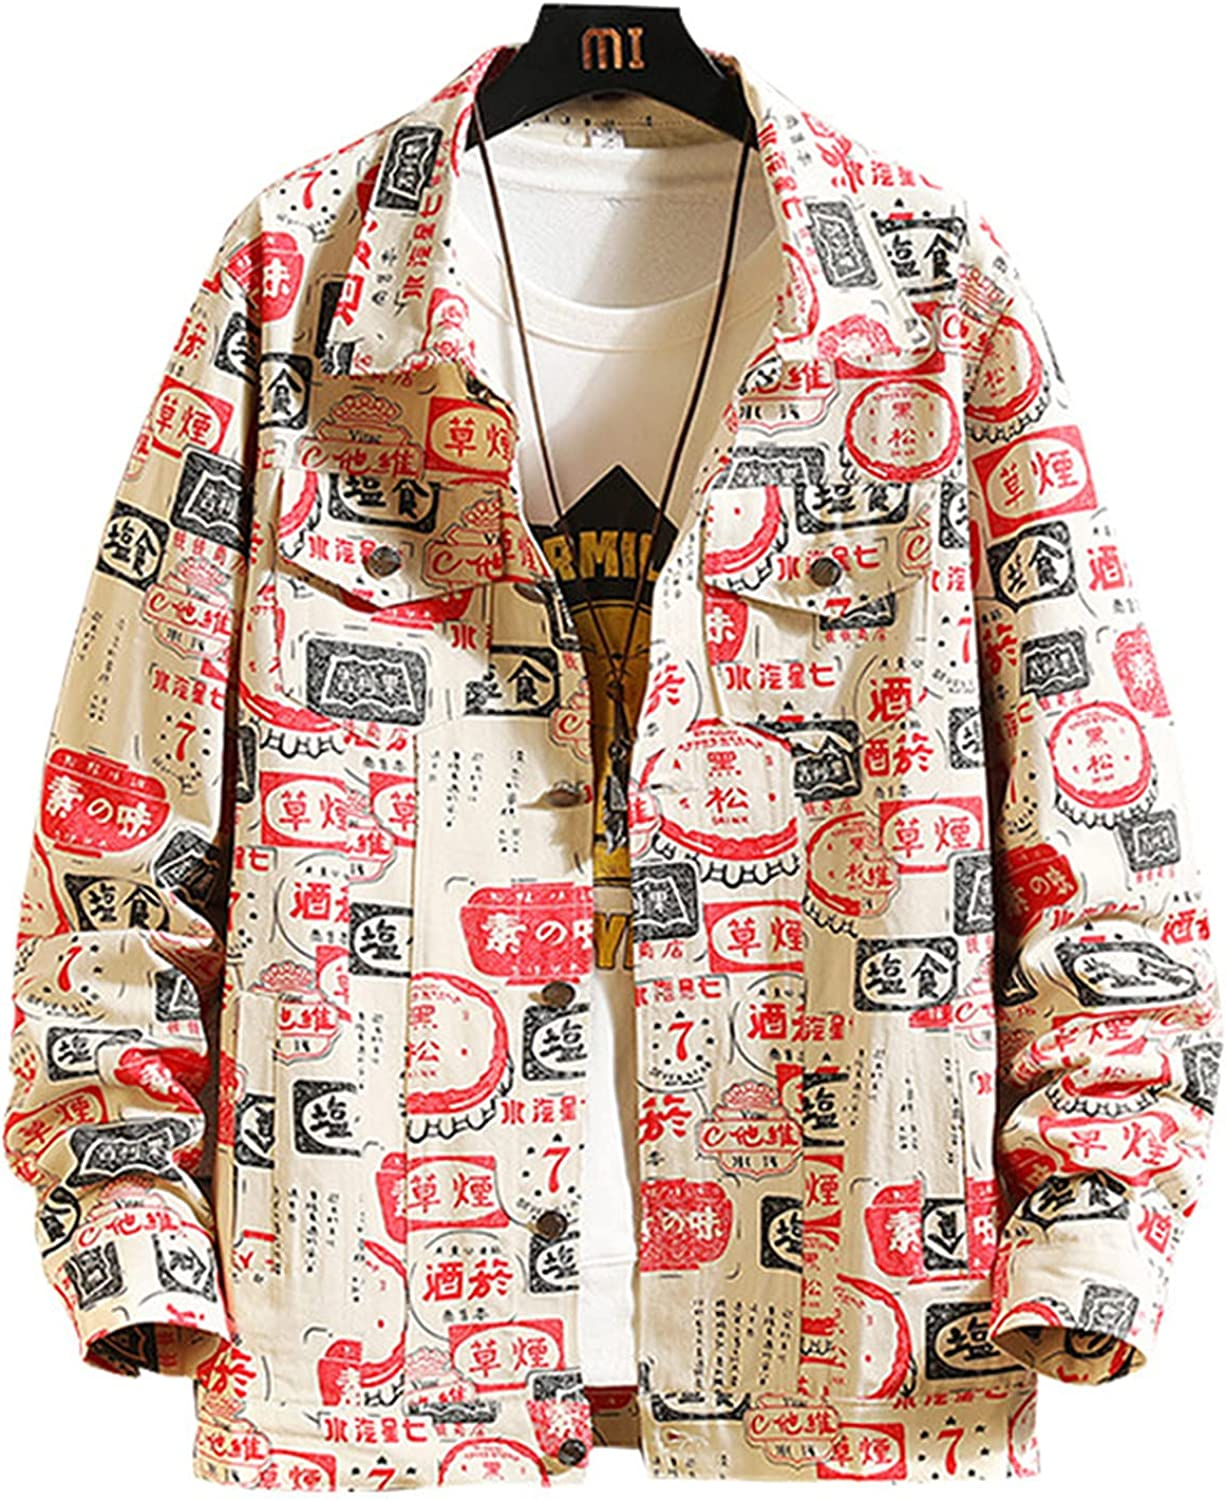 Men's Graffiti Denim lowest price Jacket with Party Plus Button Size Clubwear Max 47% OFF